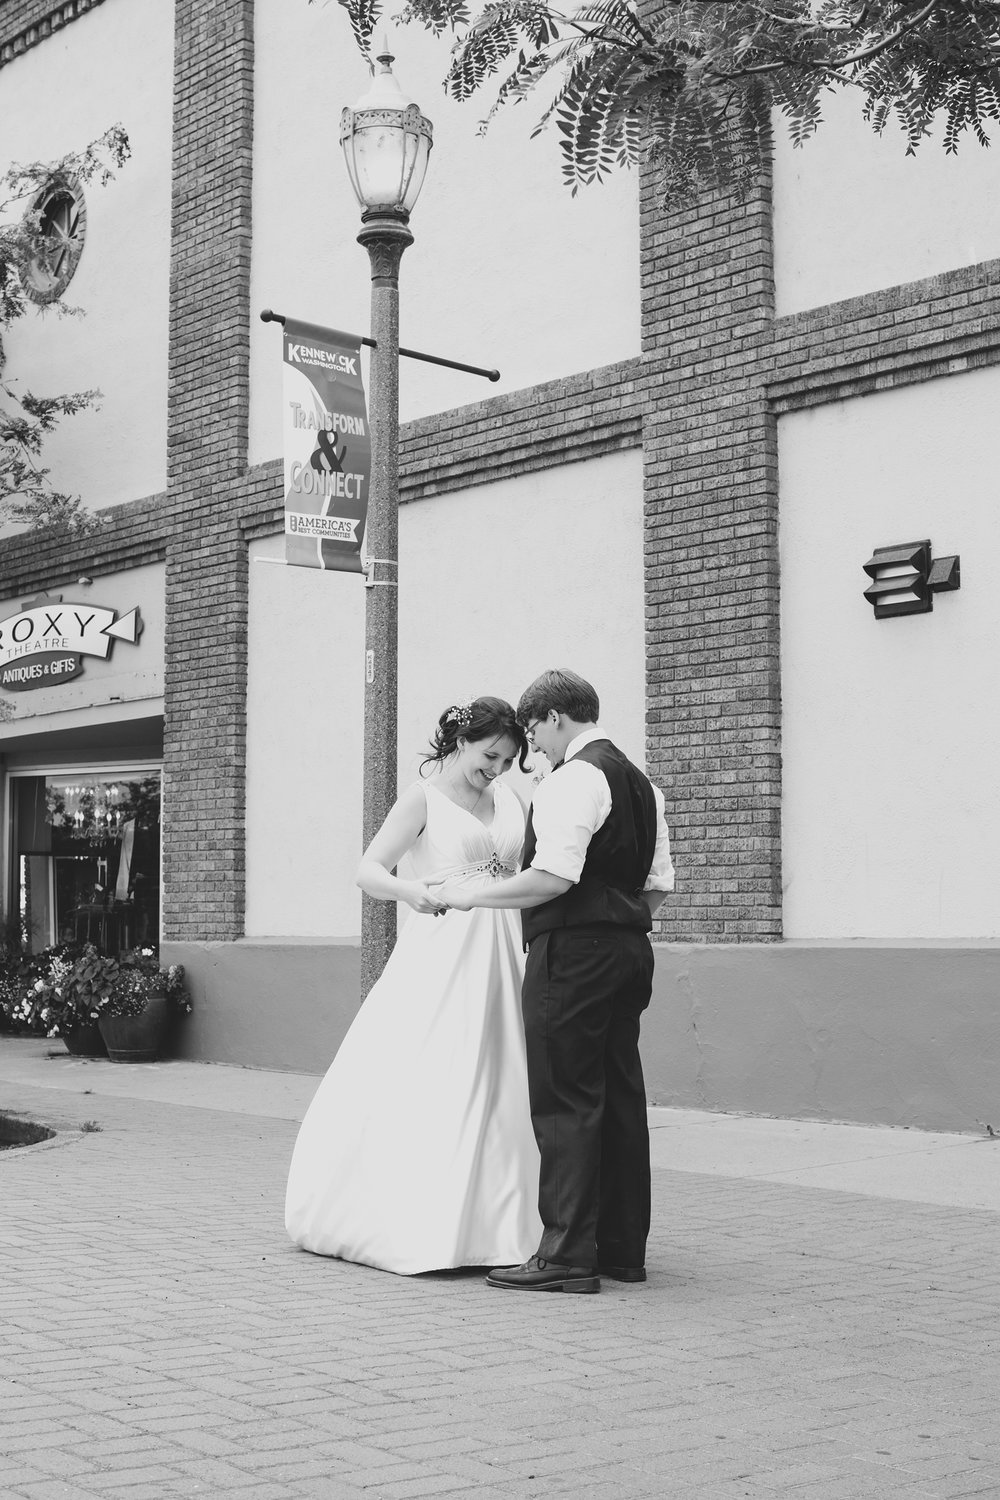 Tri Cities Wedding Photographer_Karis and Adrienne_Church wedding_ Downtown Kennewick 6_Bride and groom dancing